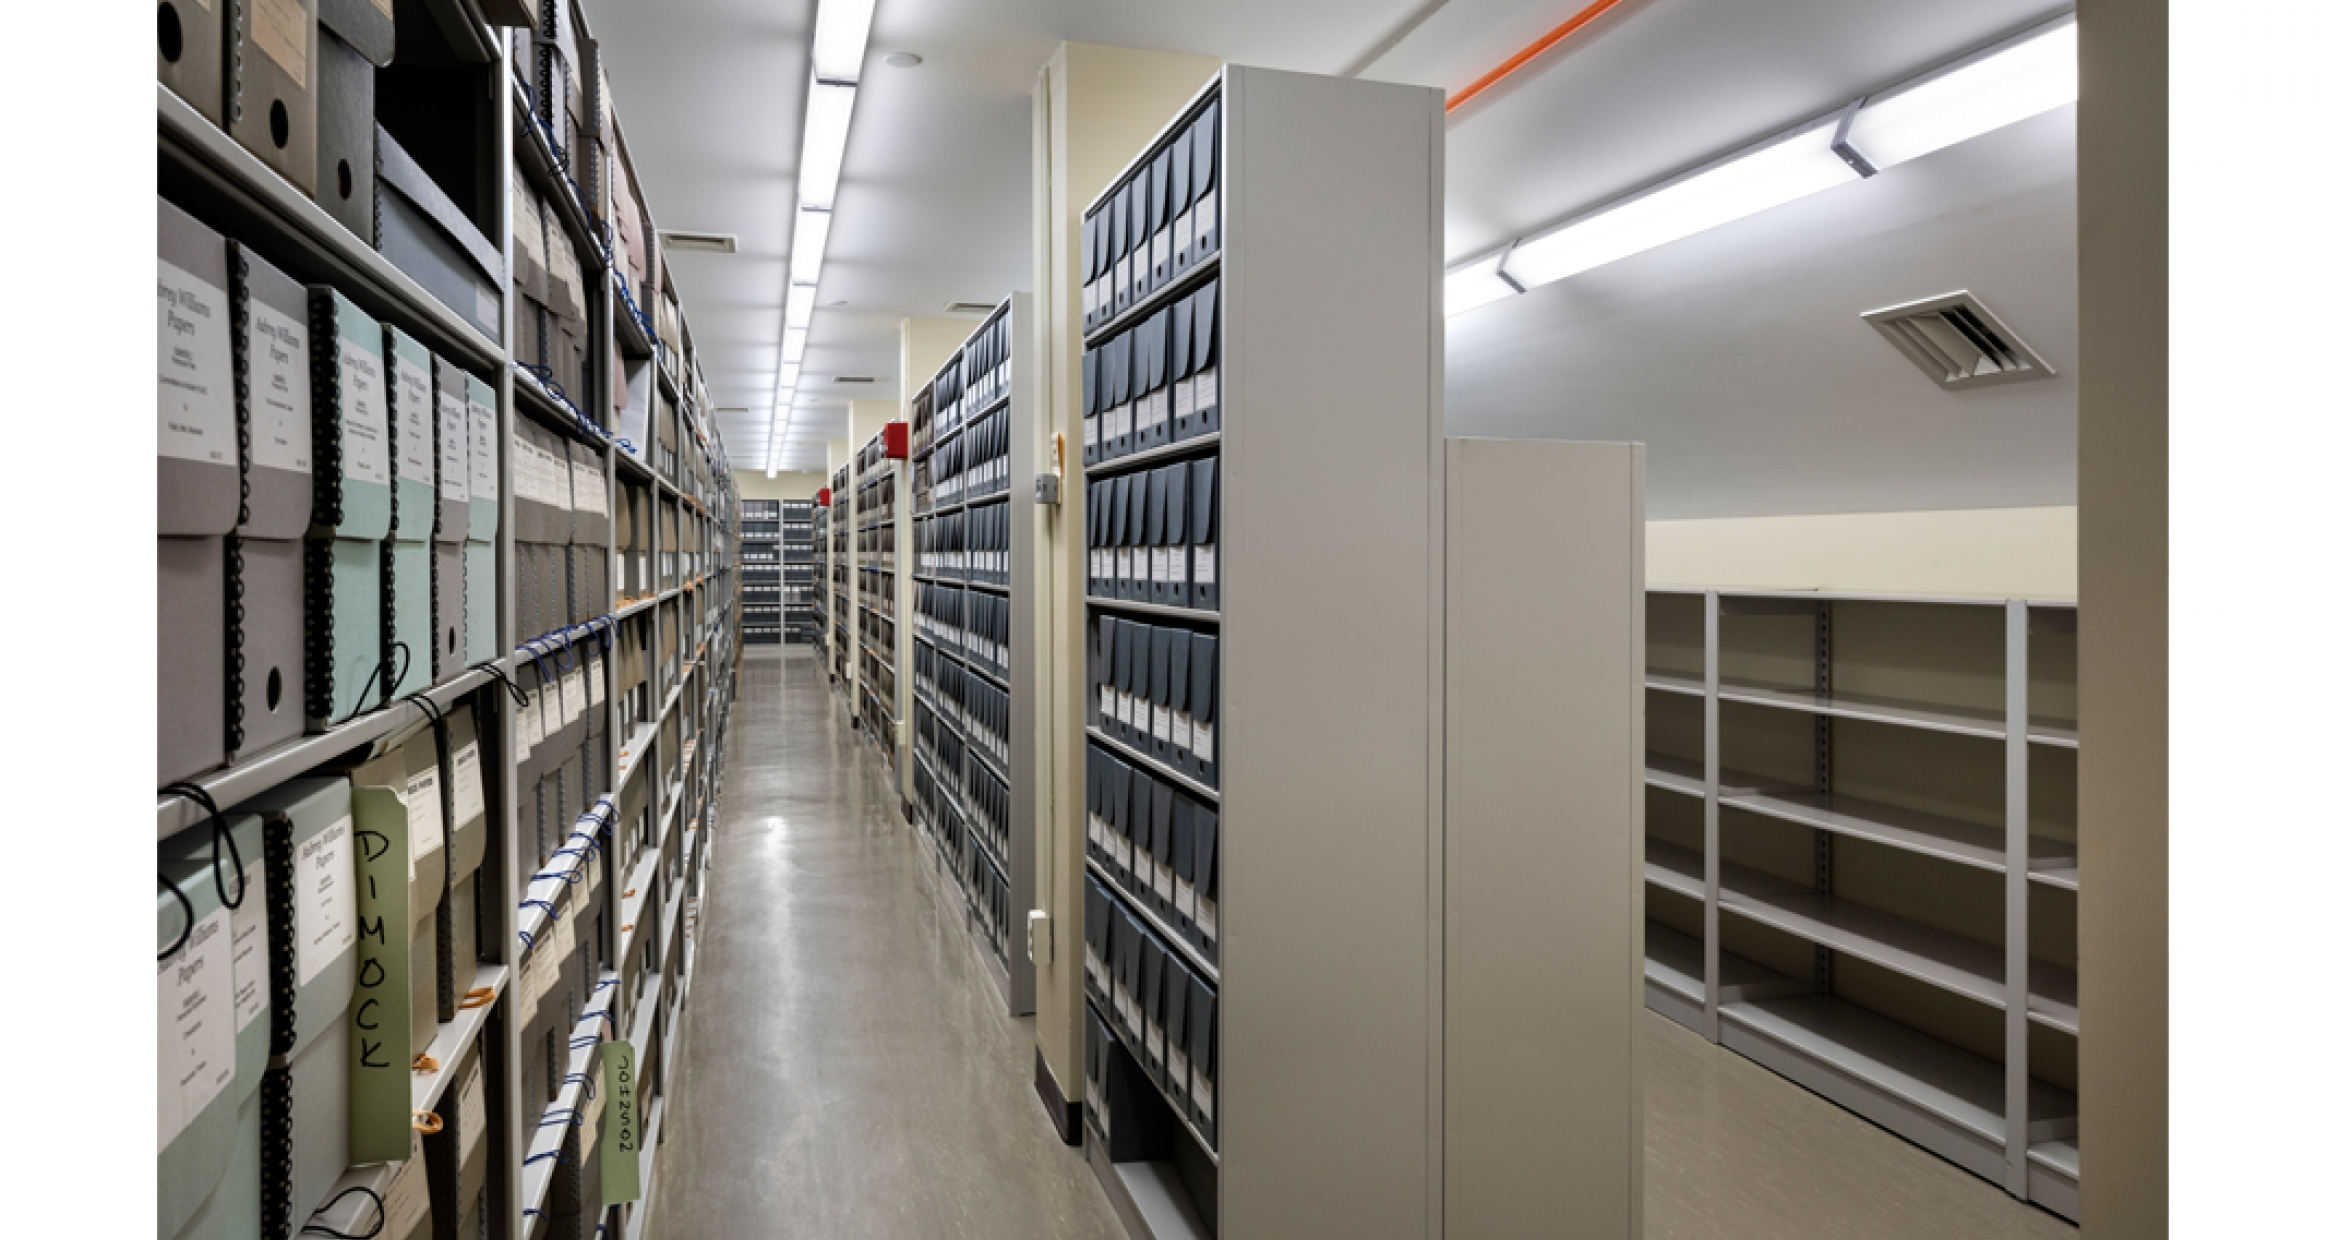 Archival storage shelving